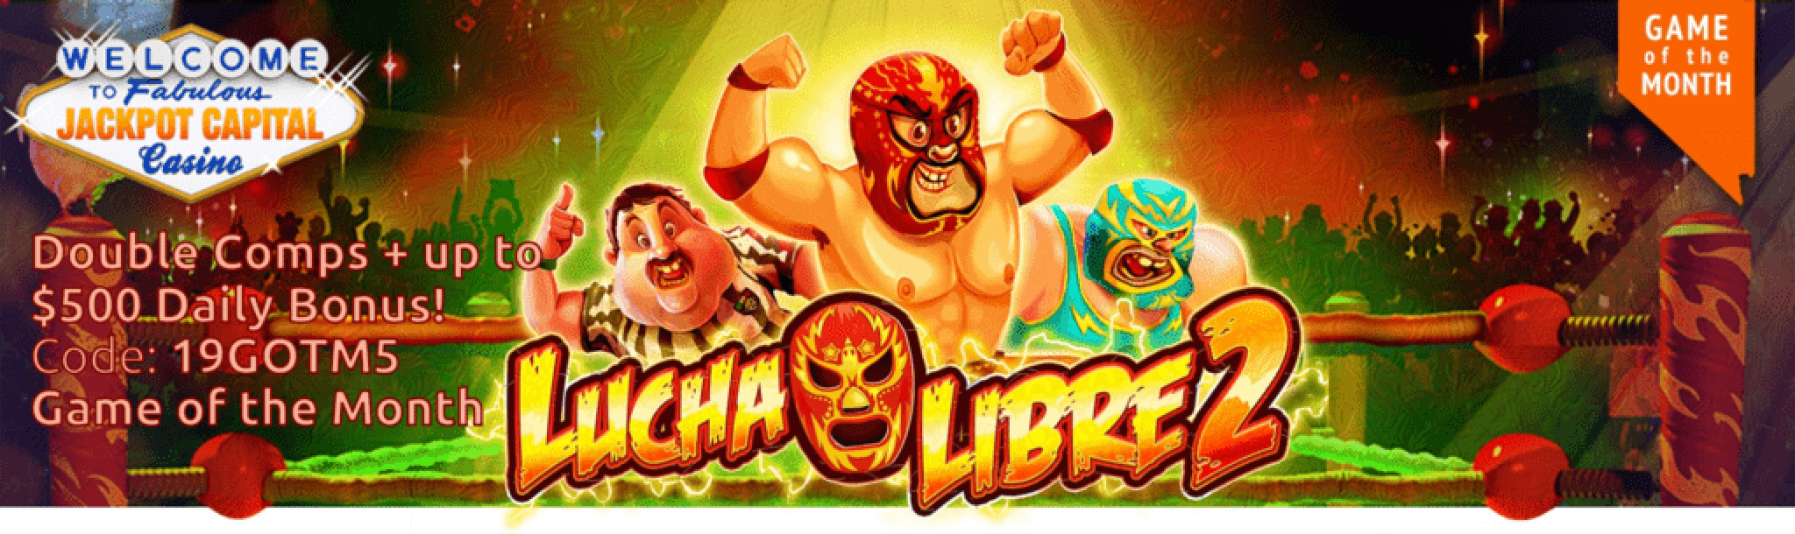 Jackpot Capital May Game of the Month RTG Lucha Libre 2